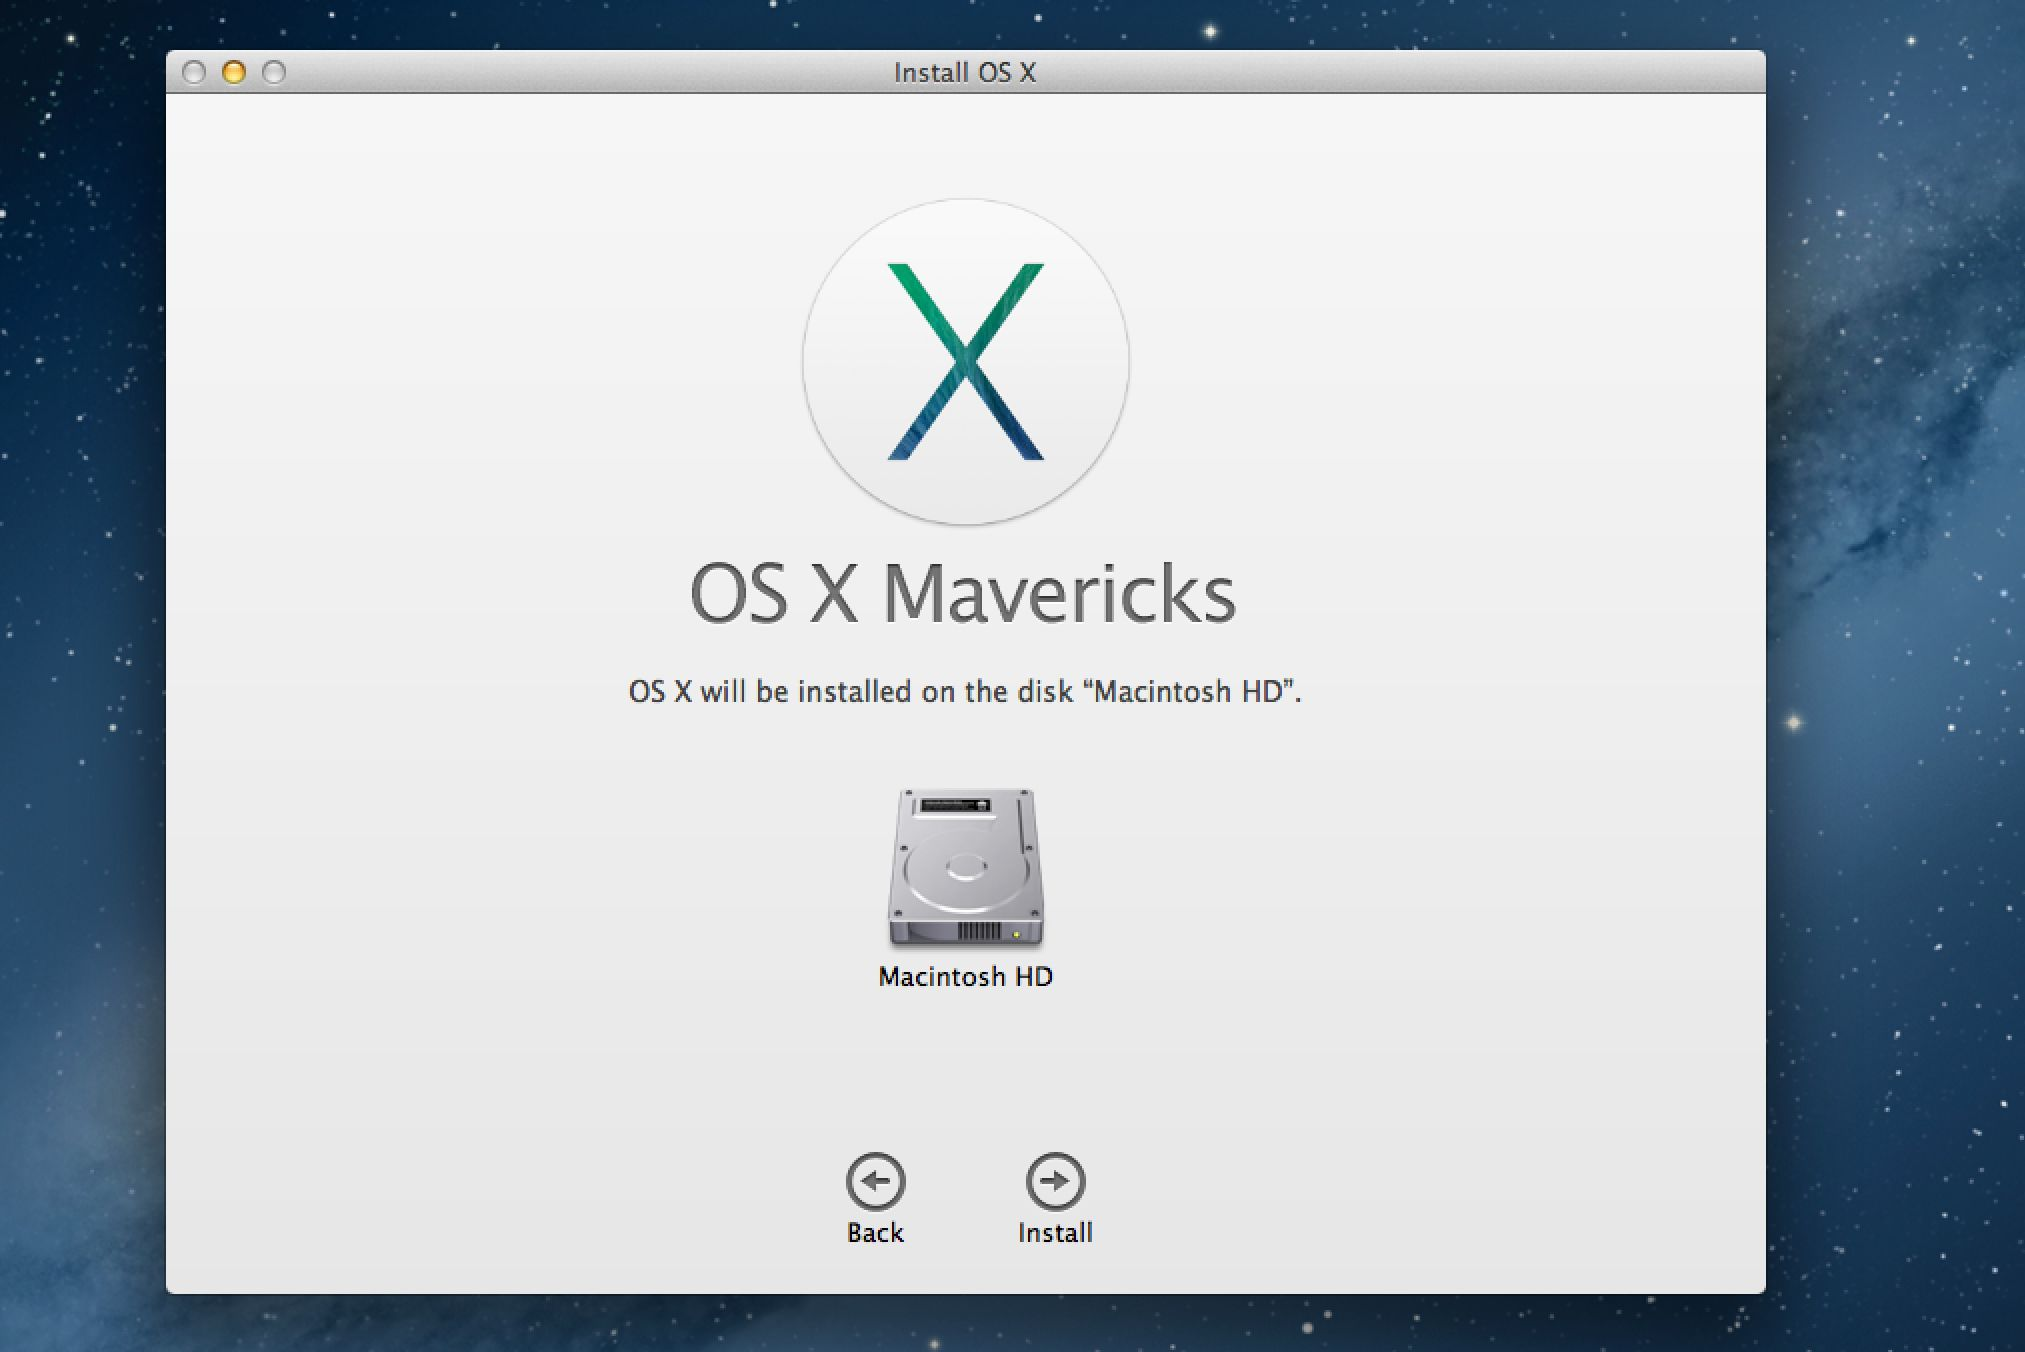 Launch The OS X Mavericks Installer